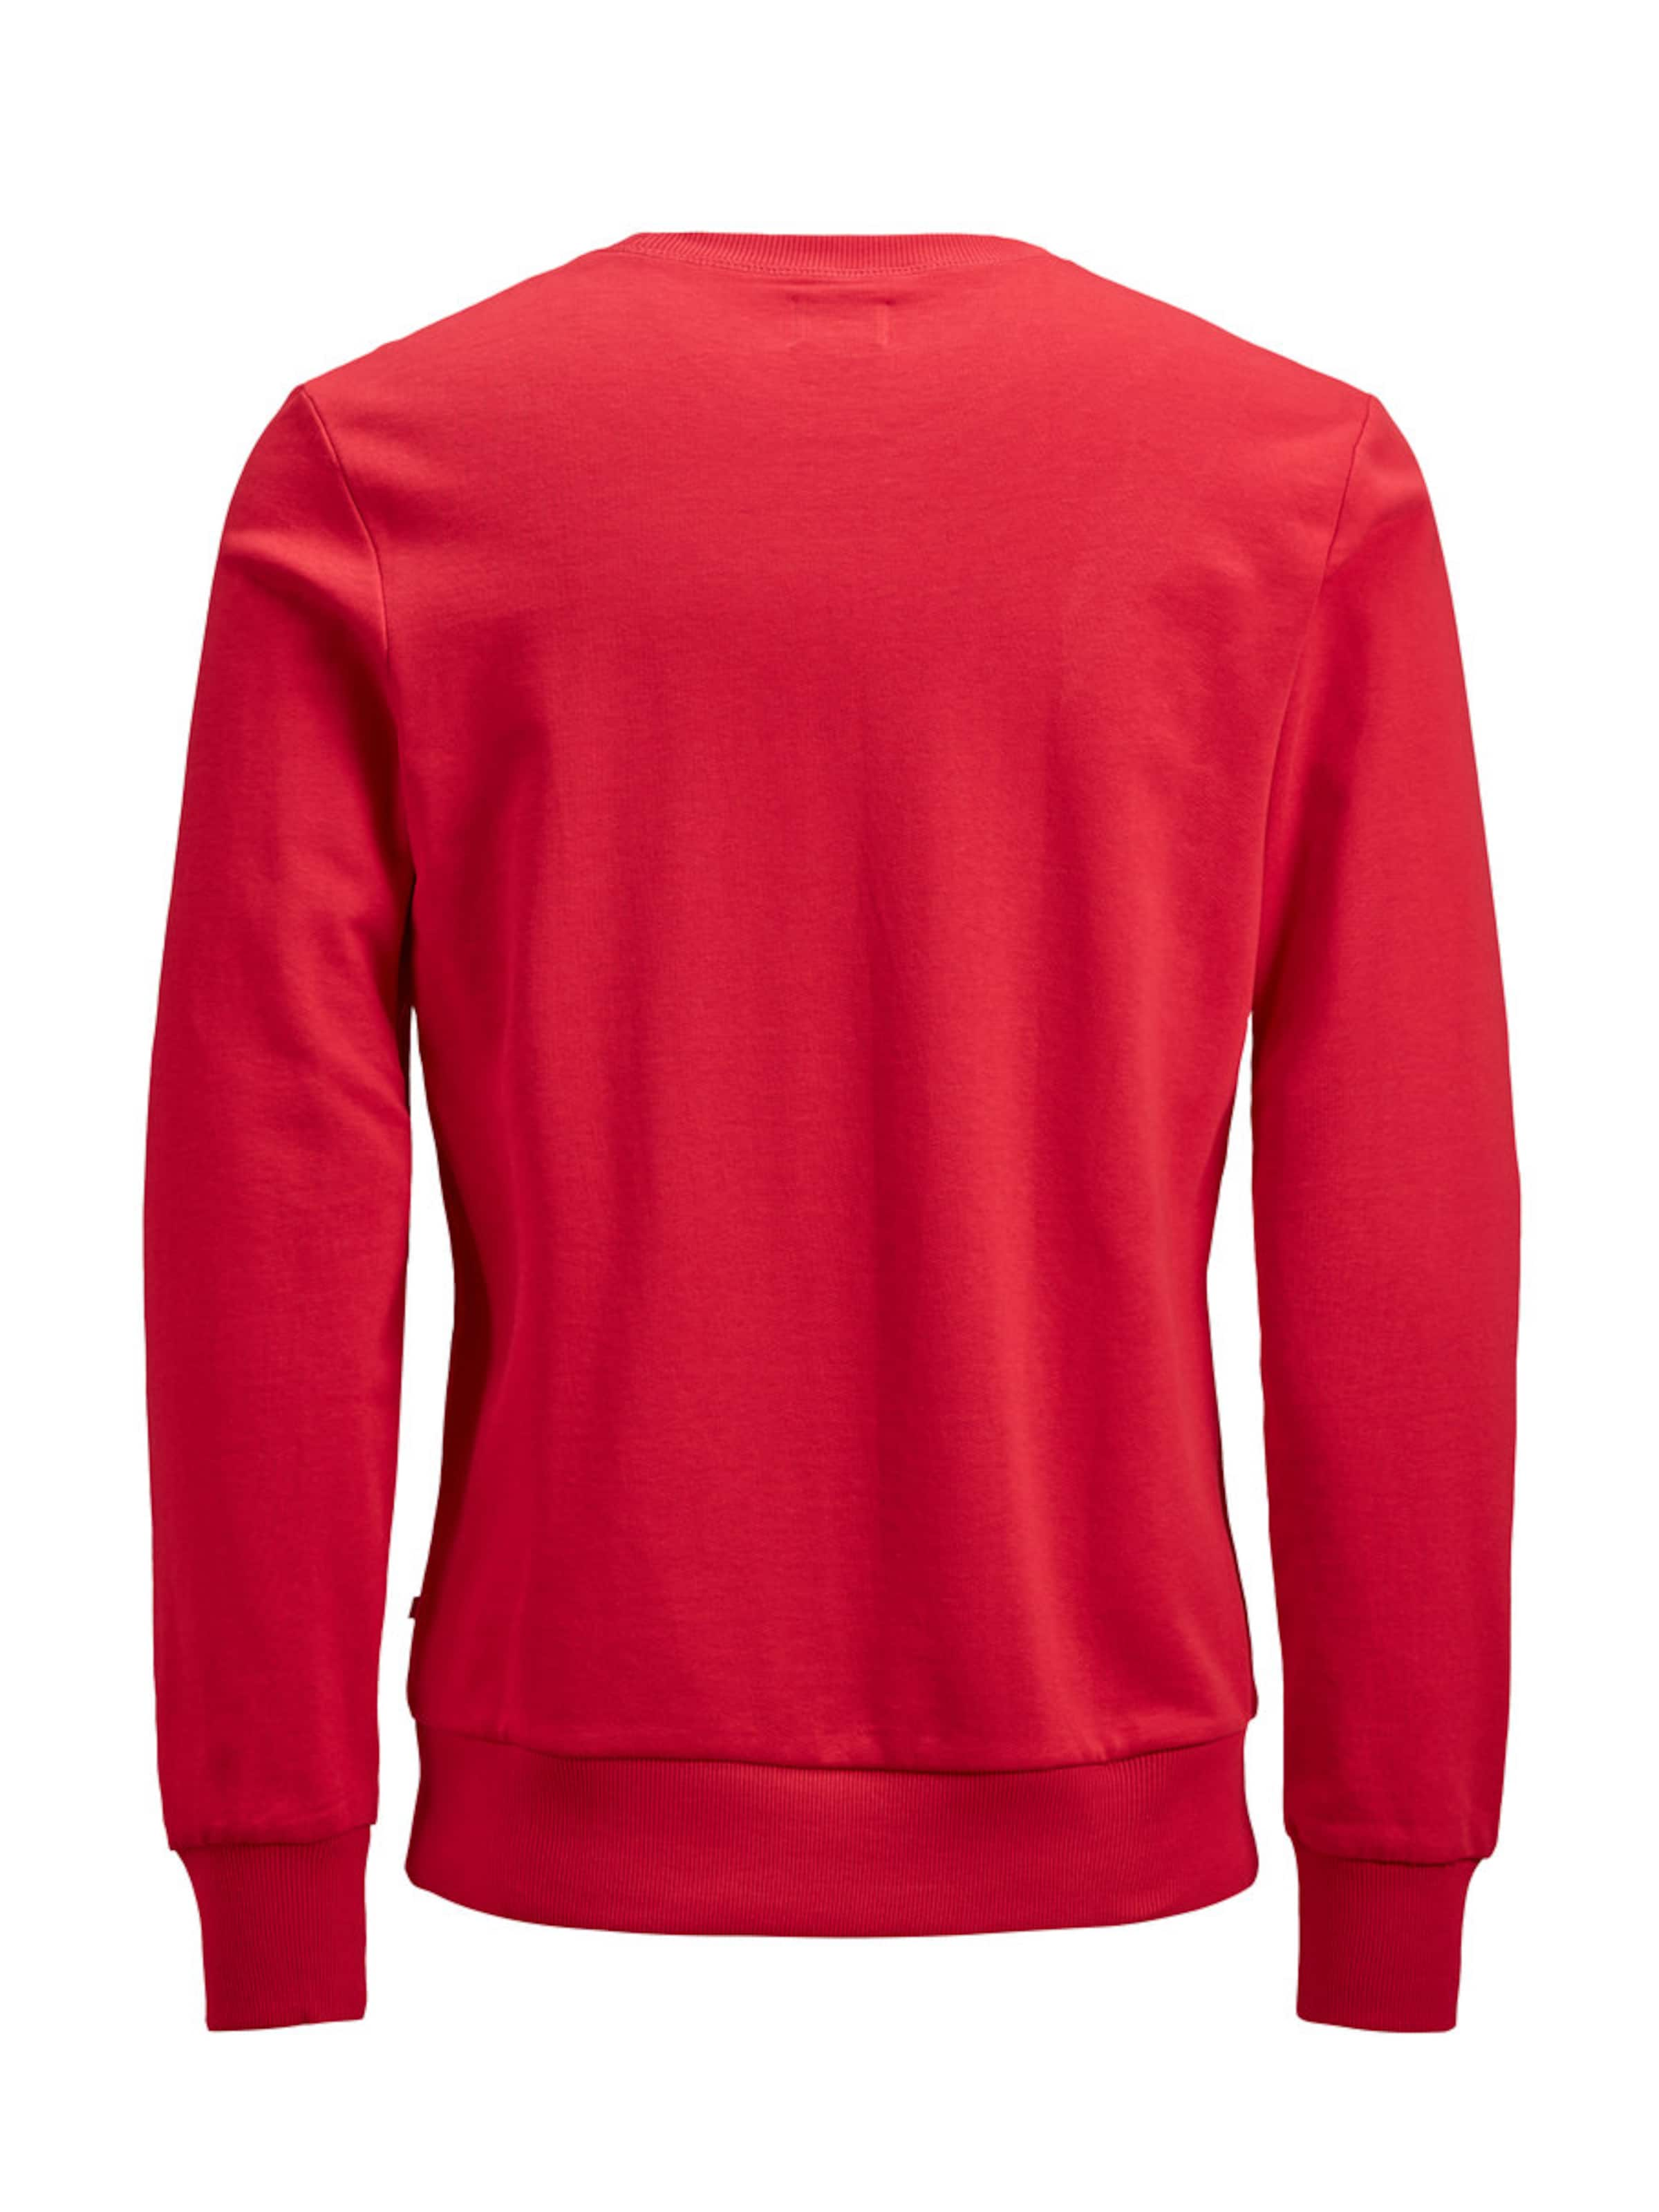 'jjeholmen' Rot Sweatshirt In Jackamp; Jones OkiXZTPlwu